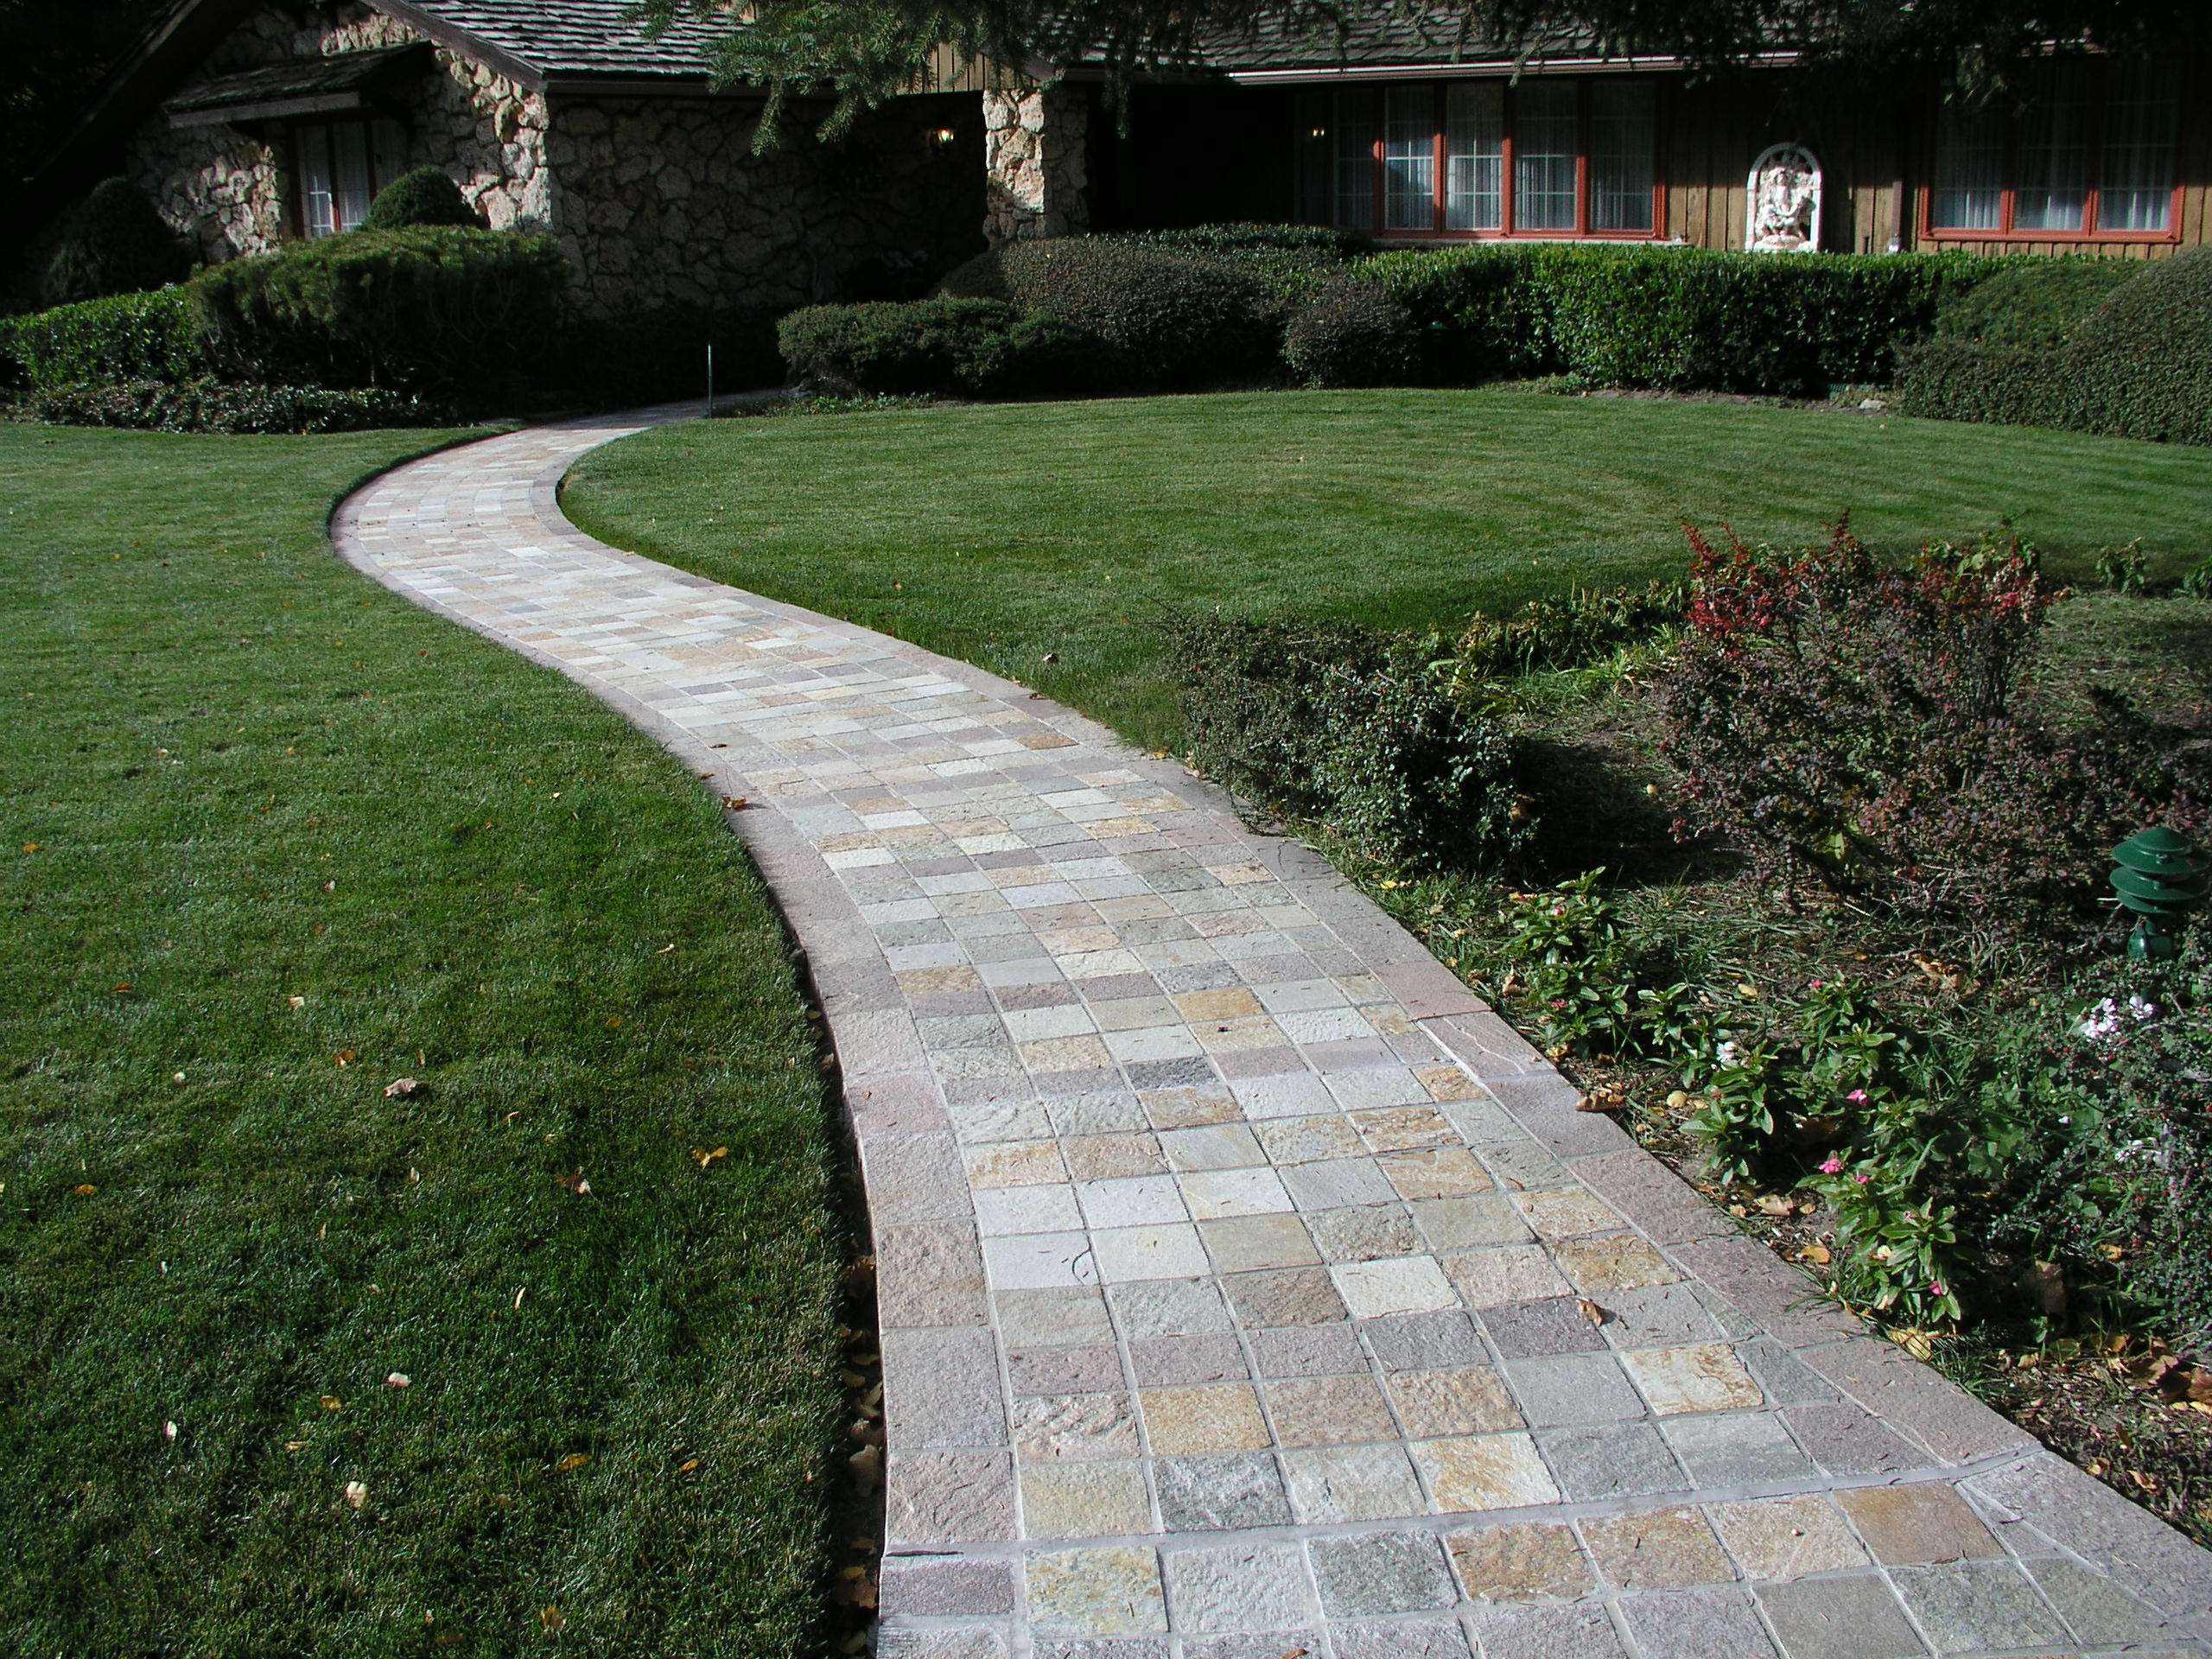 Fascinating Pavers Home Depot for Garden or Exterior: OLYMPUS DIGITAL CAMERA